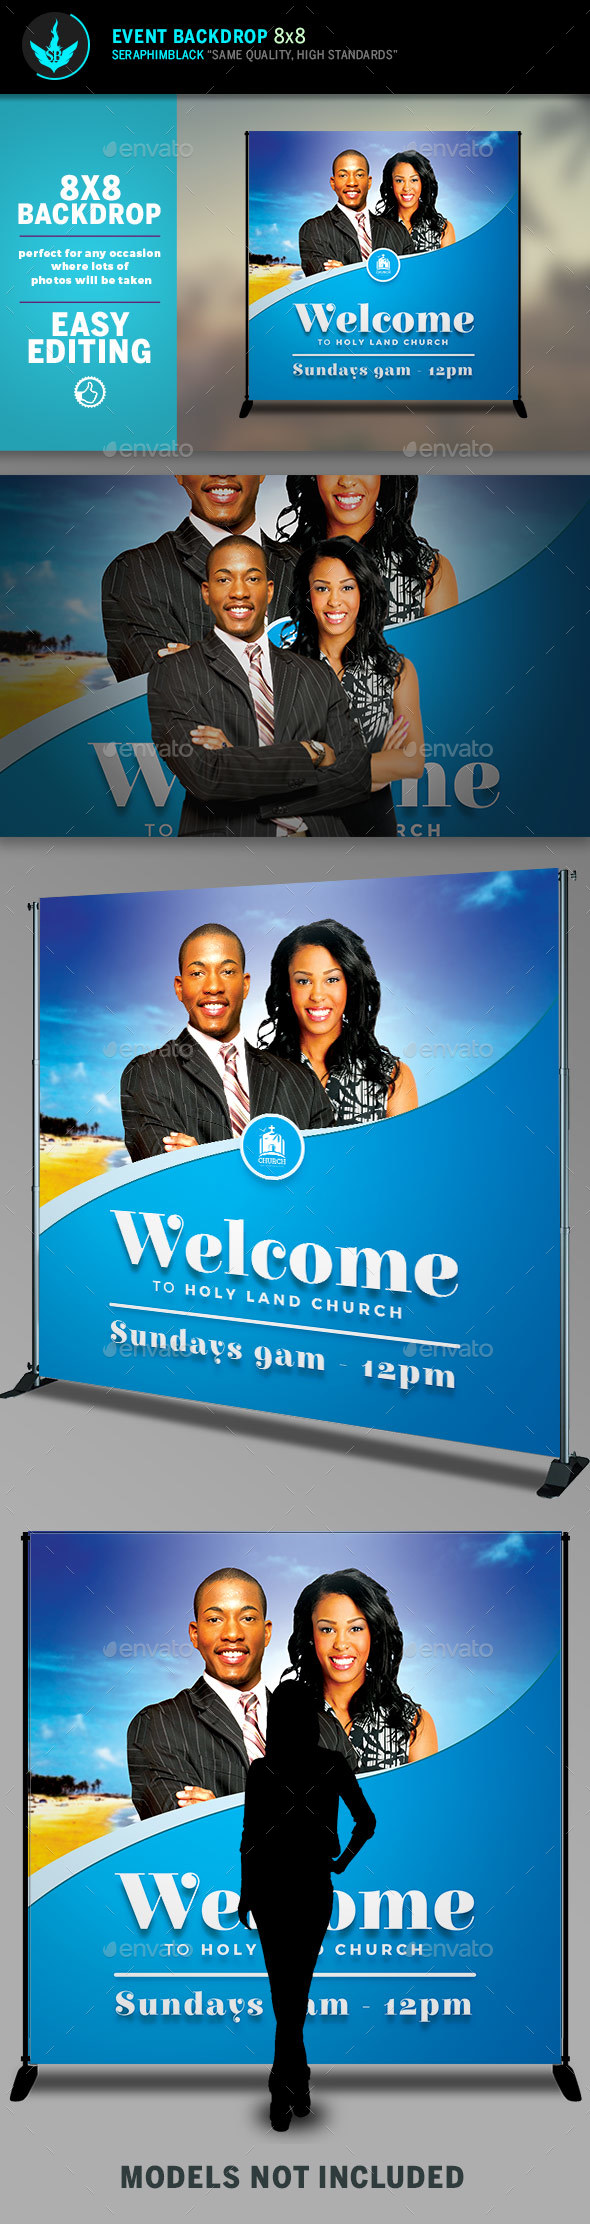 Church Welcome 8x8 Event Backdrop Template - Signage Print Templates